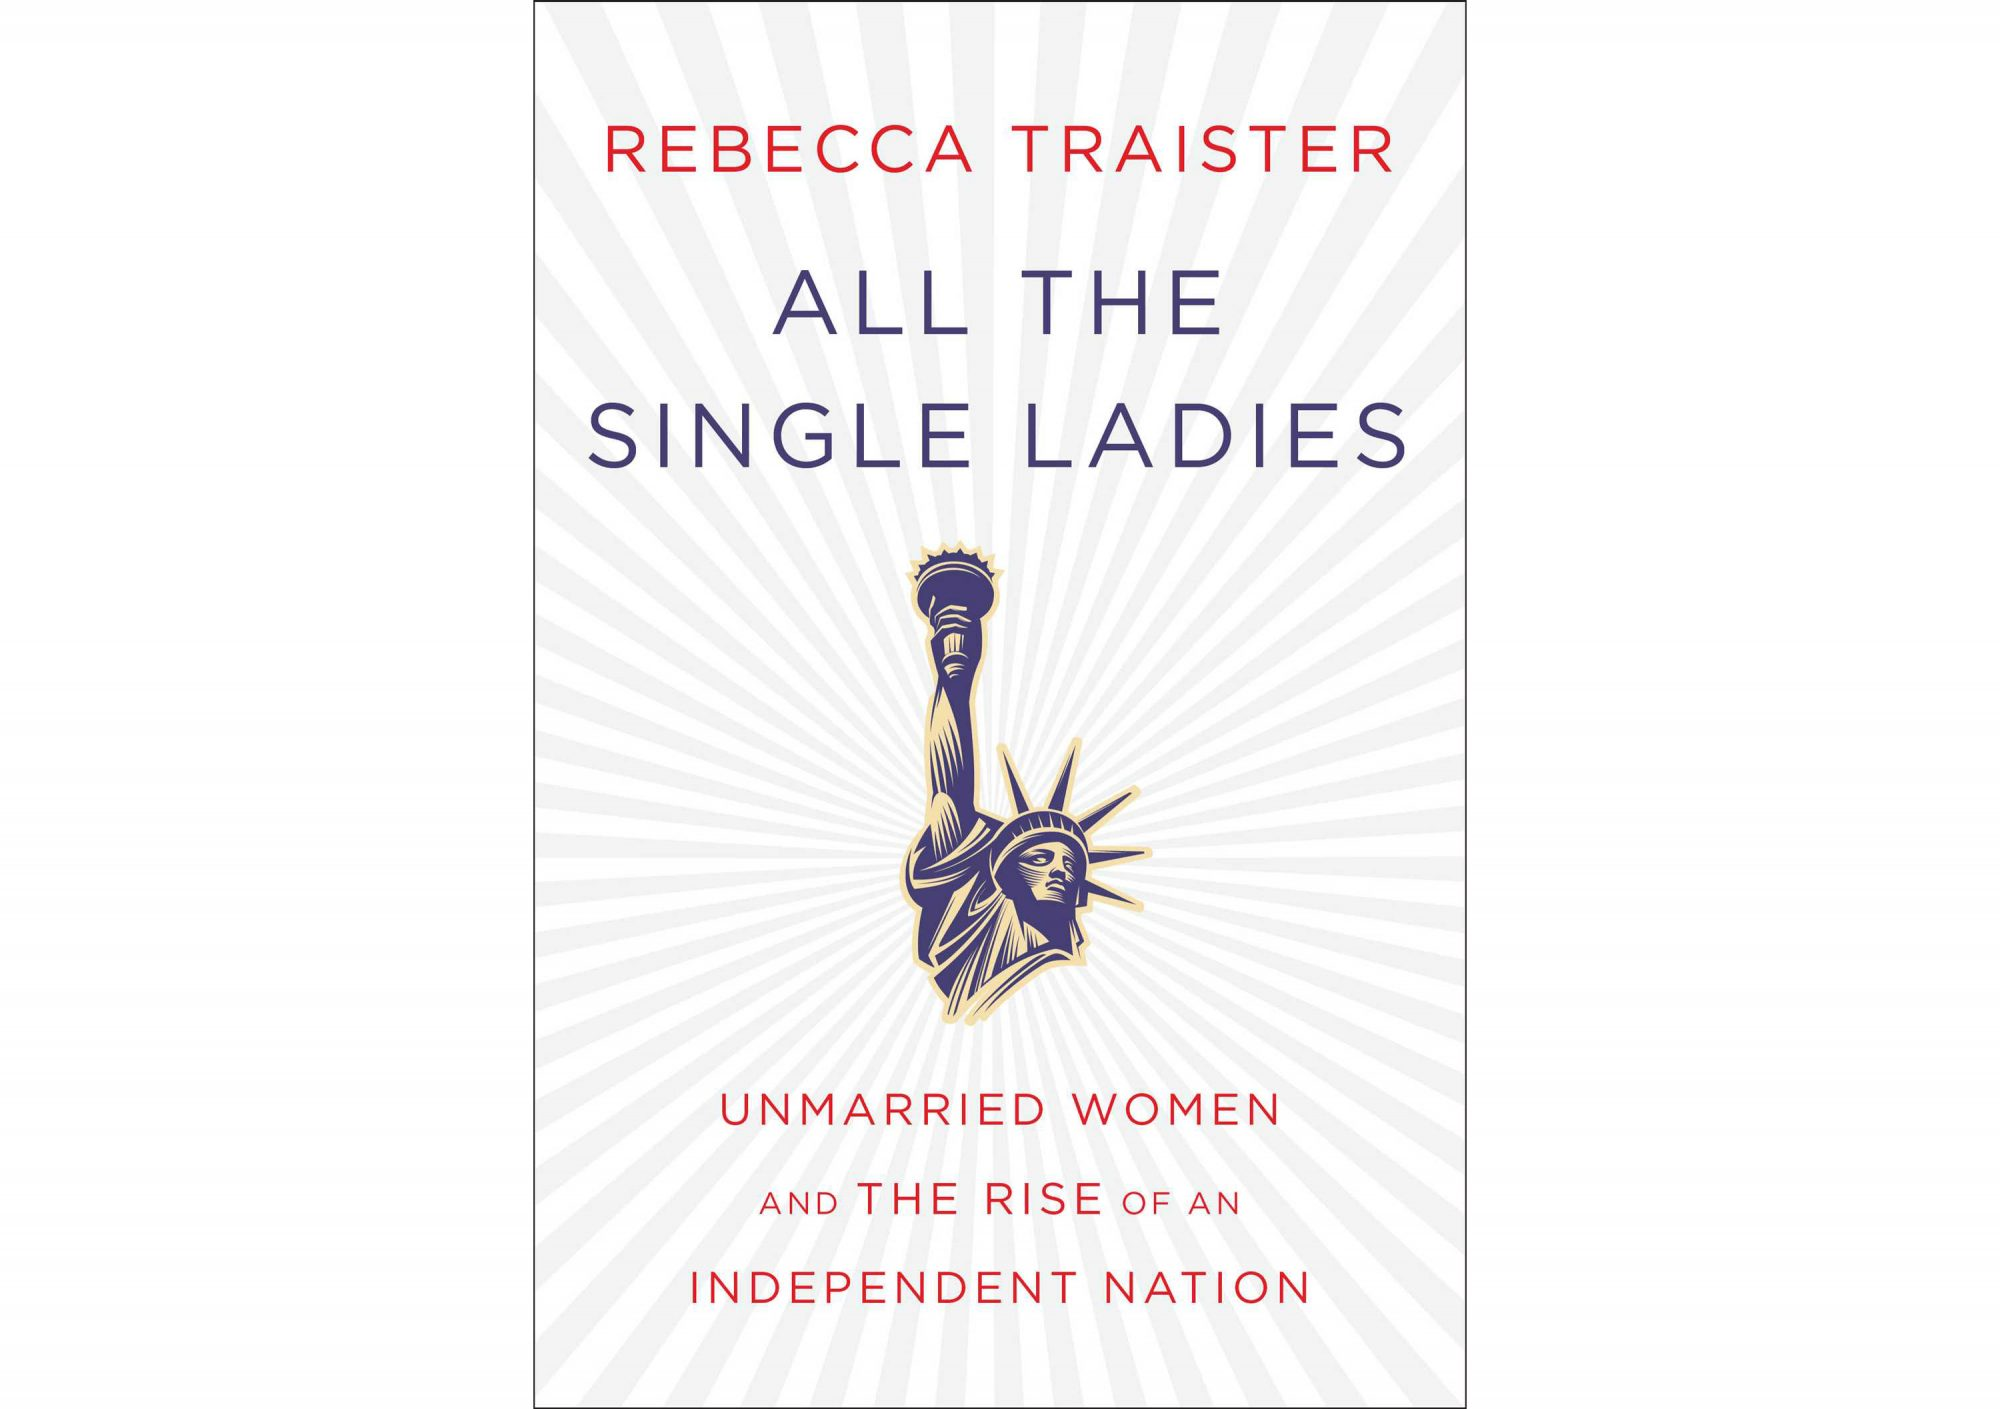 all-the-single-ladies-rebecca-traister